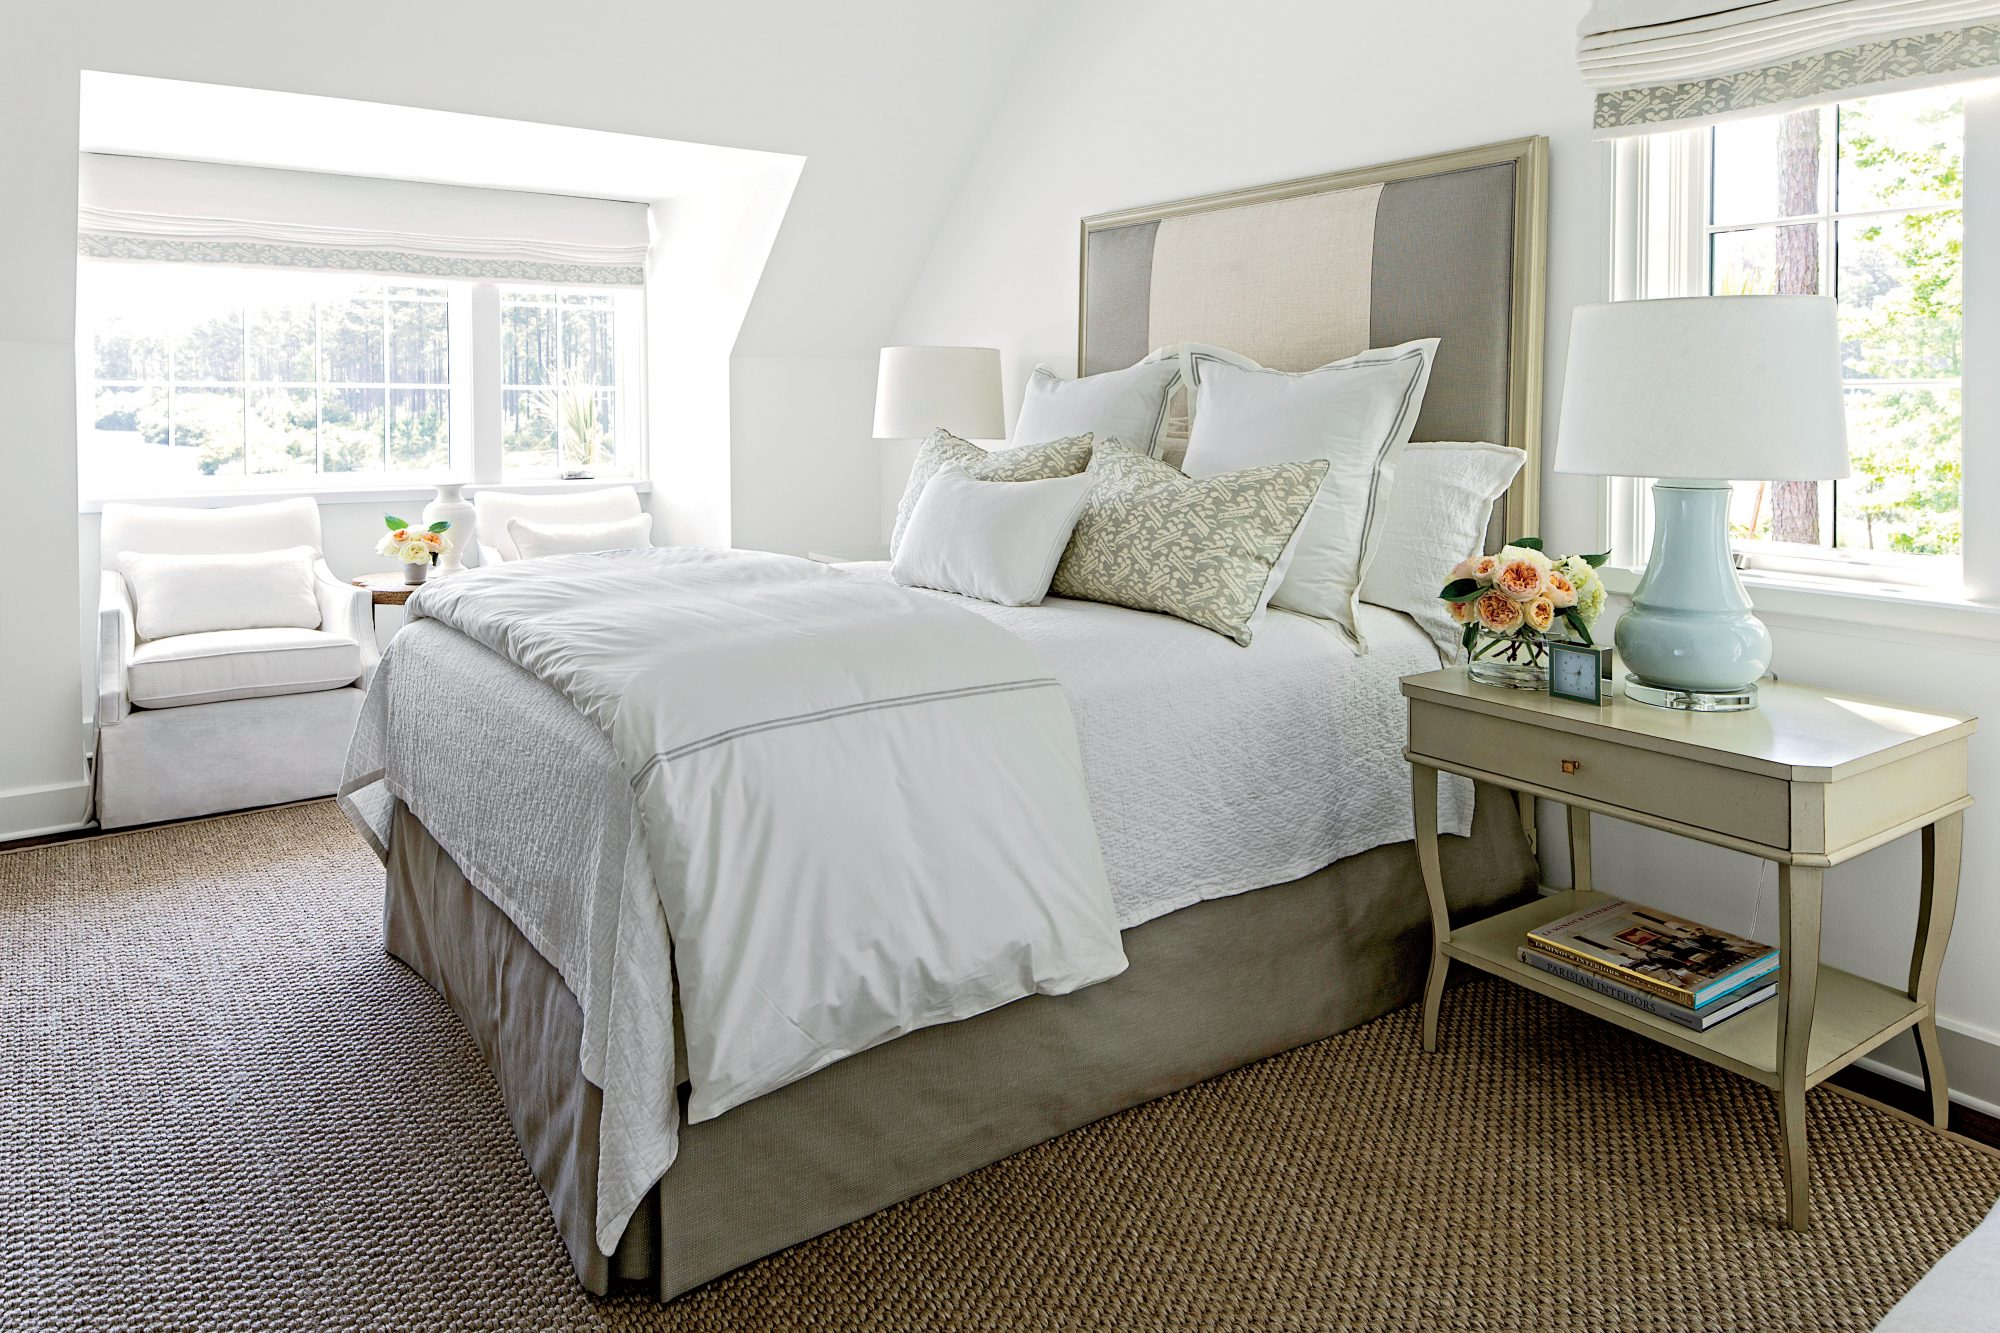 Mature Guest Bedroom. Gracious Guest Bedroom Decorating Ideas   Southern Living